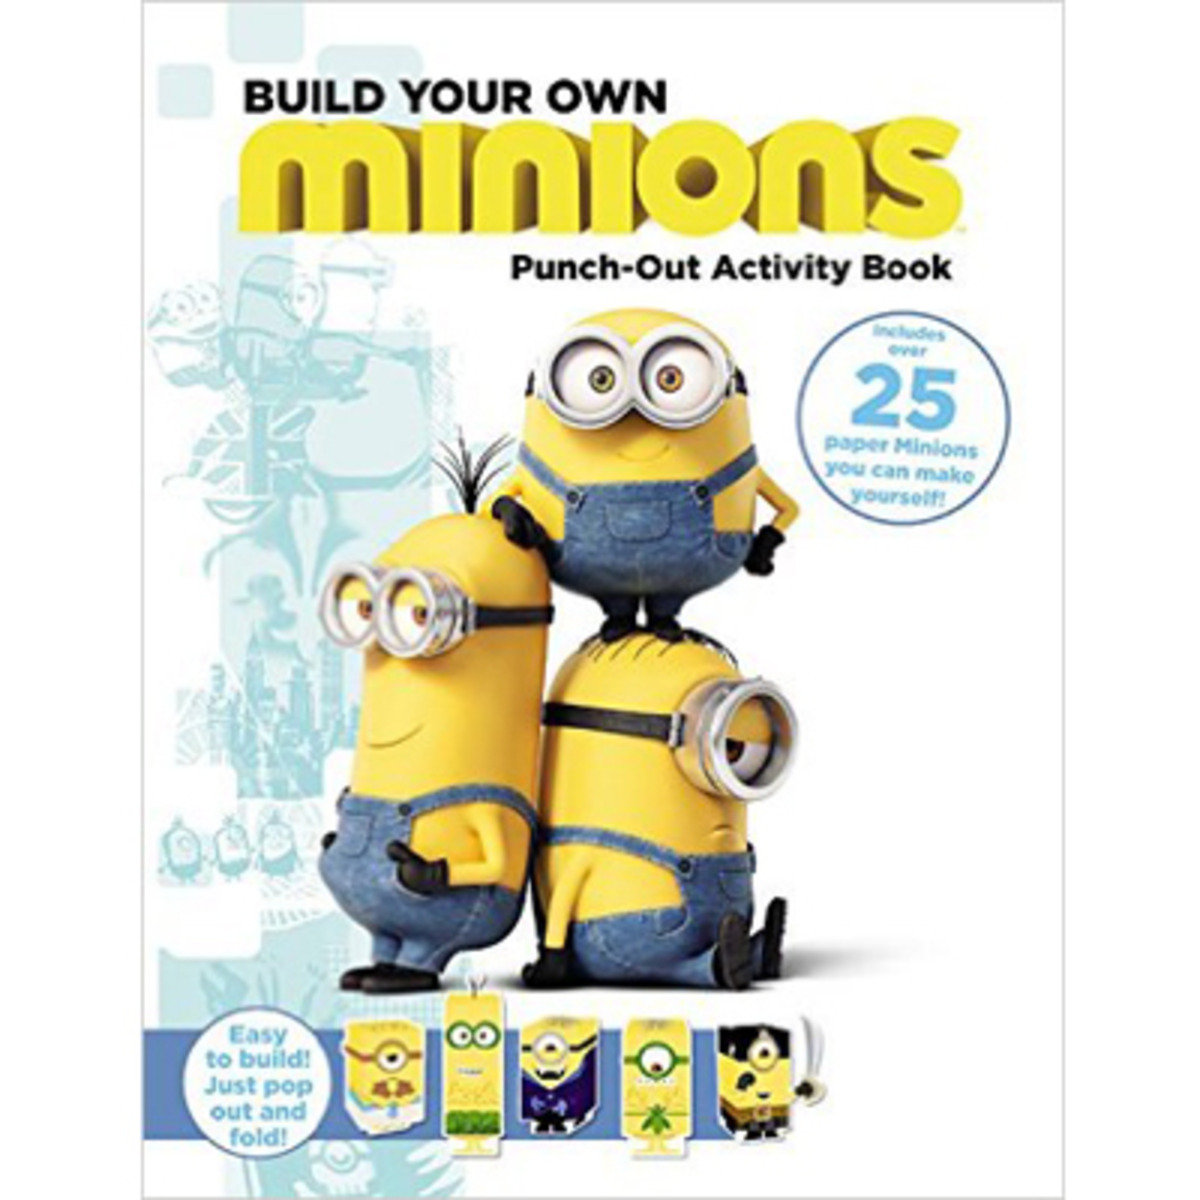 MINIONS: BUILD YOUR OWN MINIONS PUNCH-OUT ACTIVITY BOOK 9780316299992